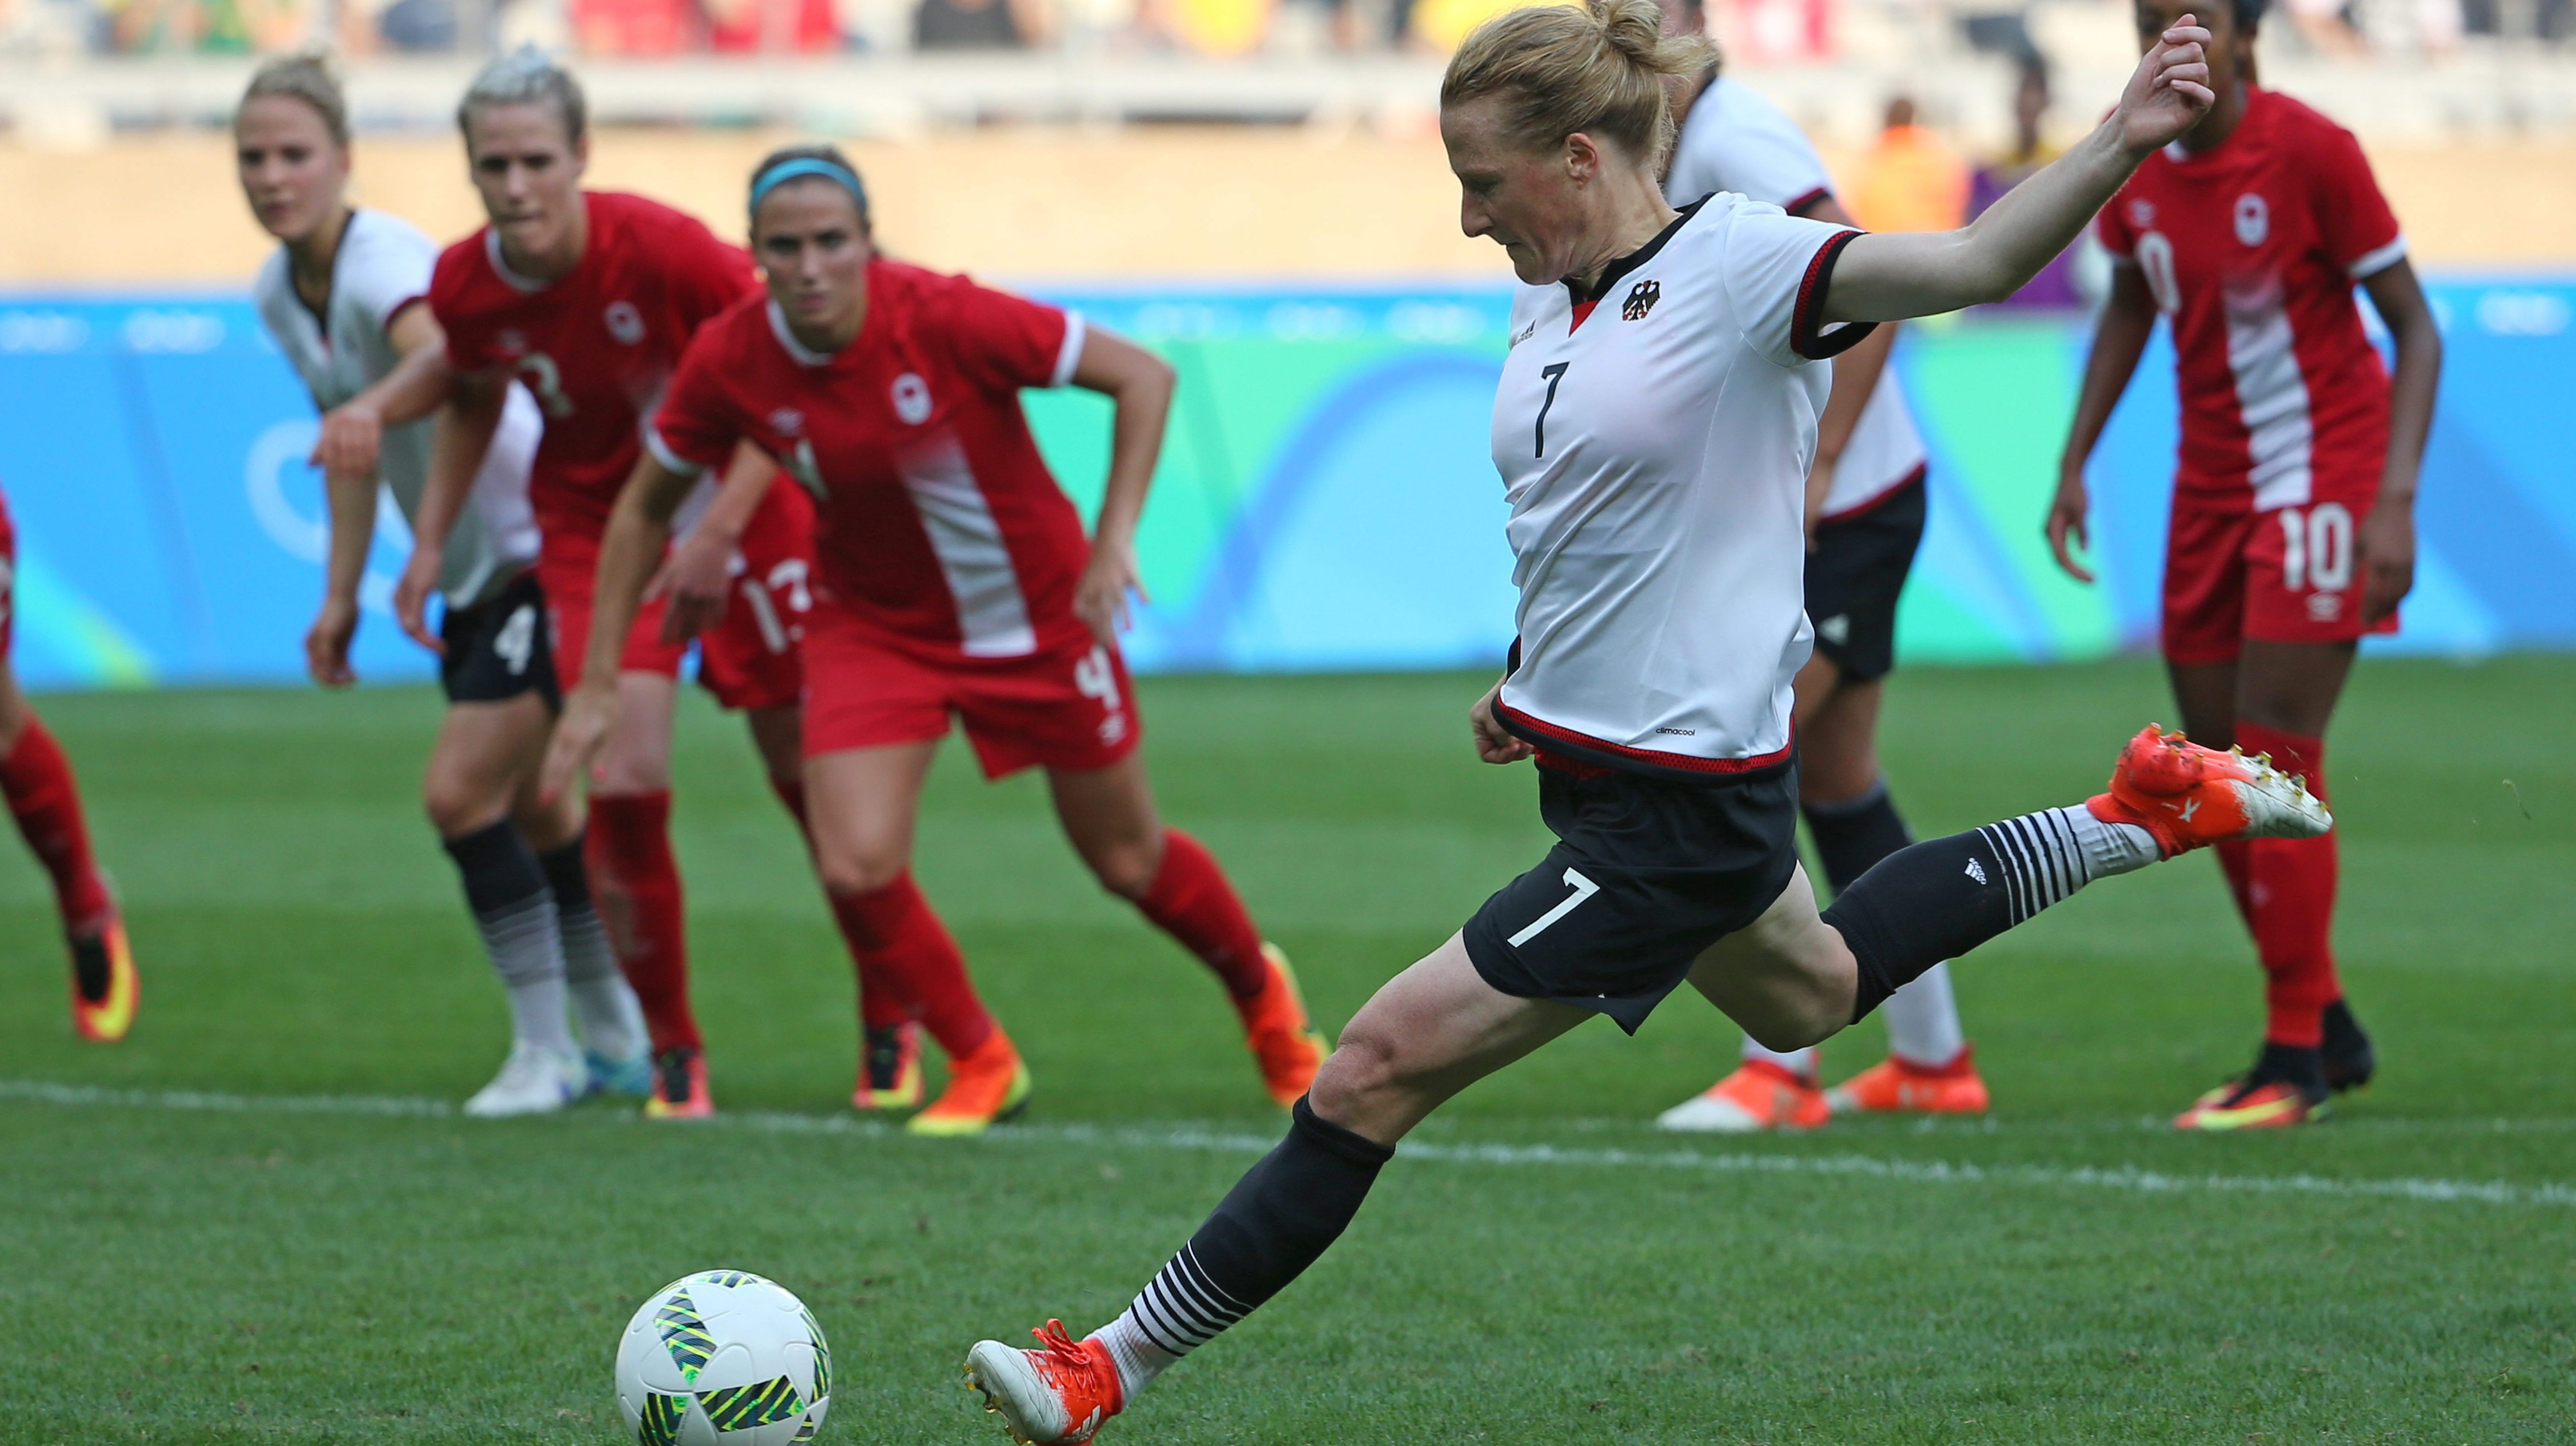 Germany's Melanie Behringer scores from the penalty spot during a semi-final match of the women's Olympic football tournament between Canada and Germany at the Mineirao stadium in Belo Horizonte, Brazil, on Aug. 16, 2016. THE ASSOCIATED PRESS/Eugenio Savio